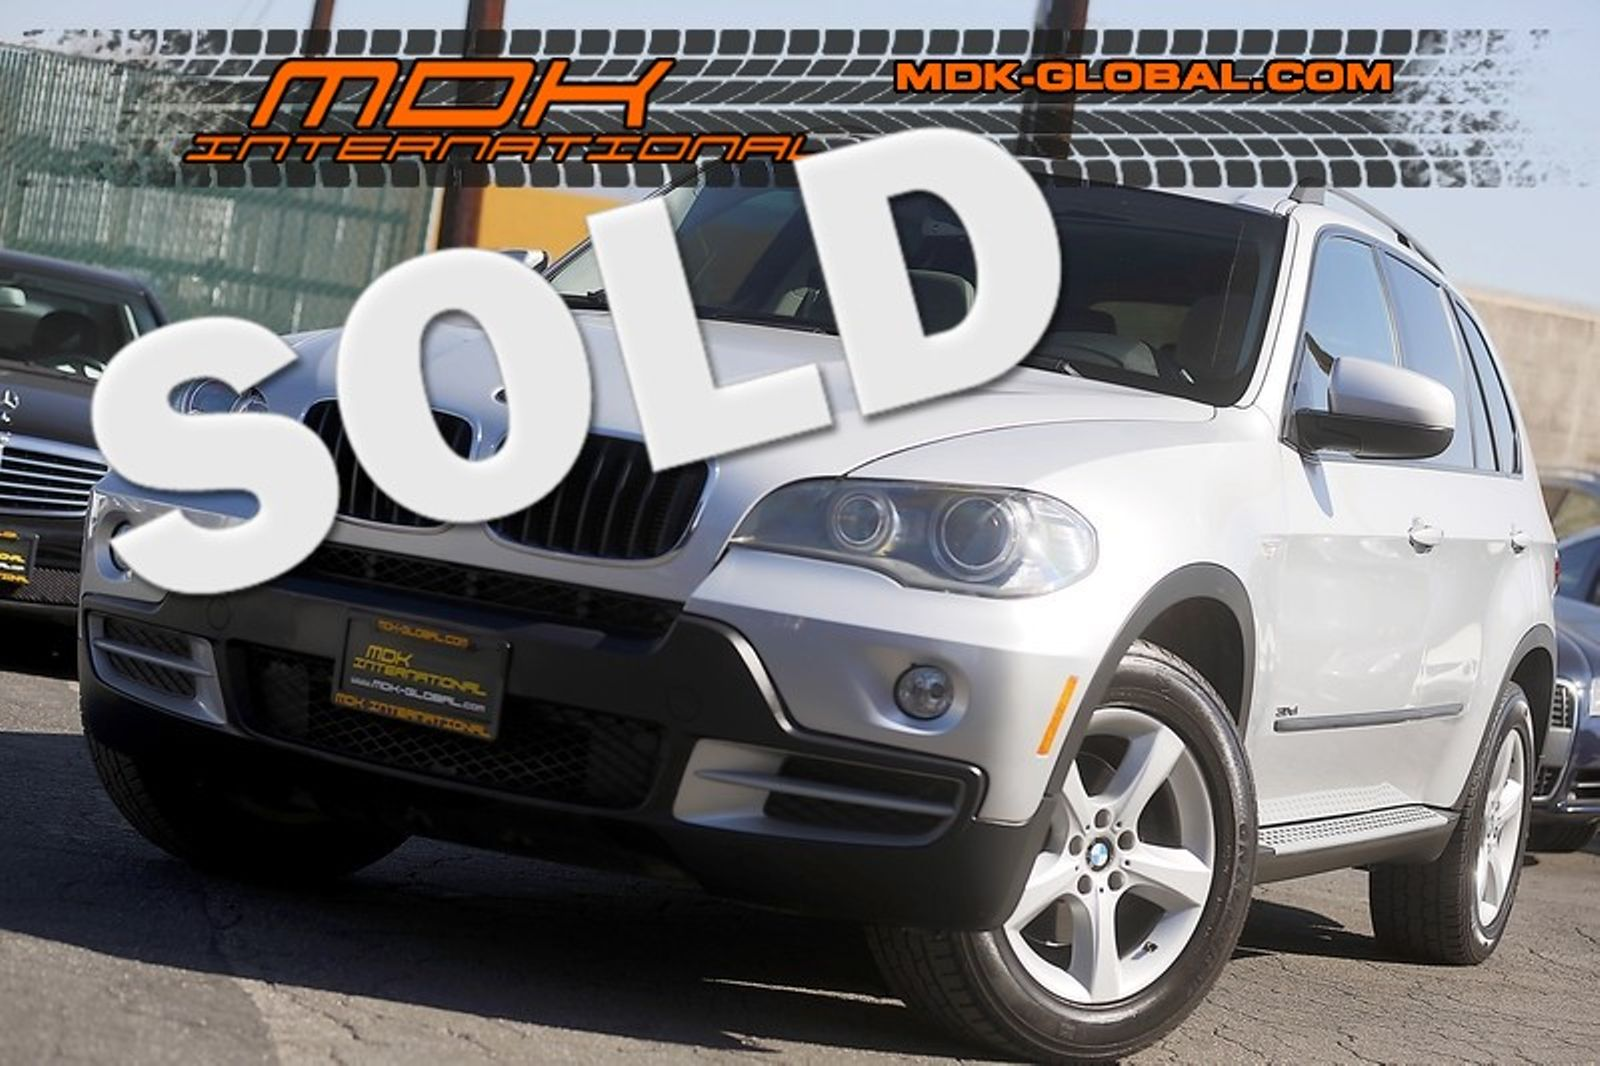 2008 bmw x5 30si - only 66k miles since new city california mdk